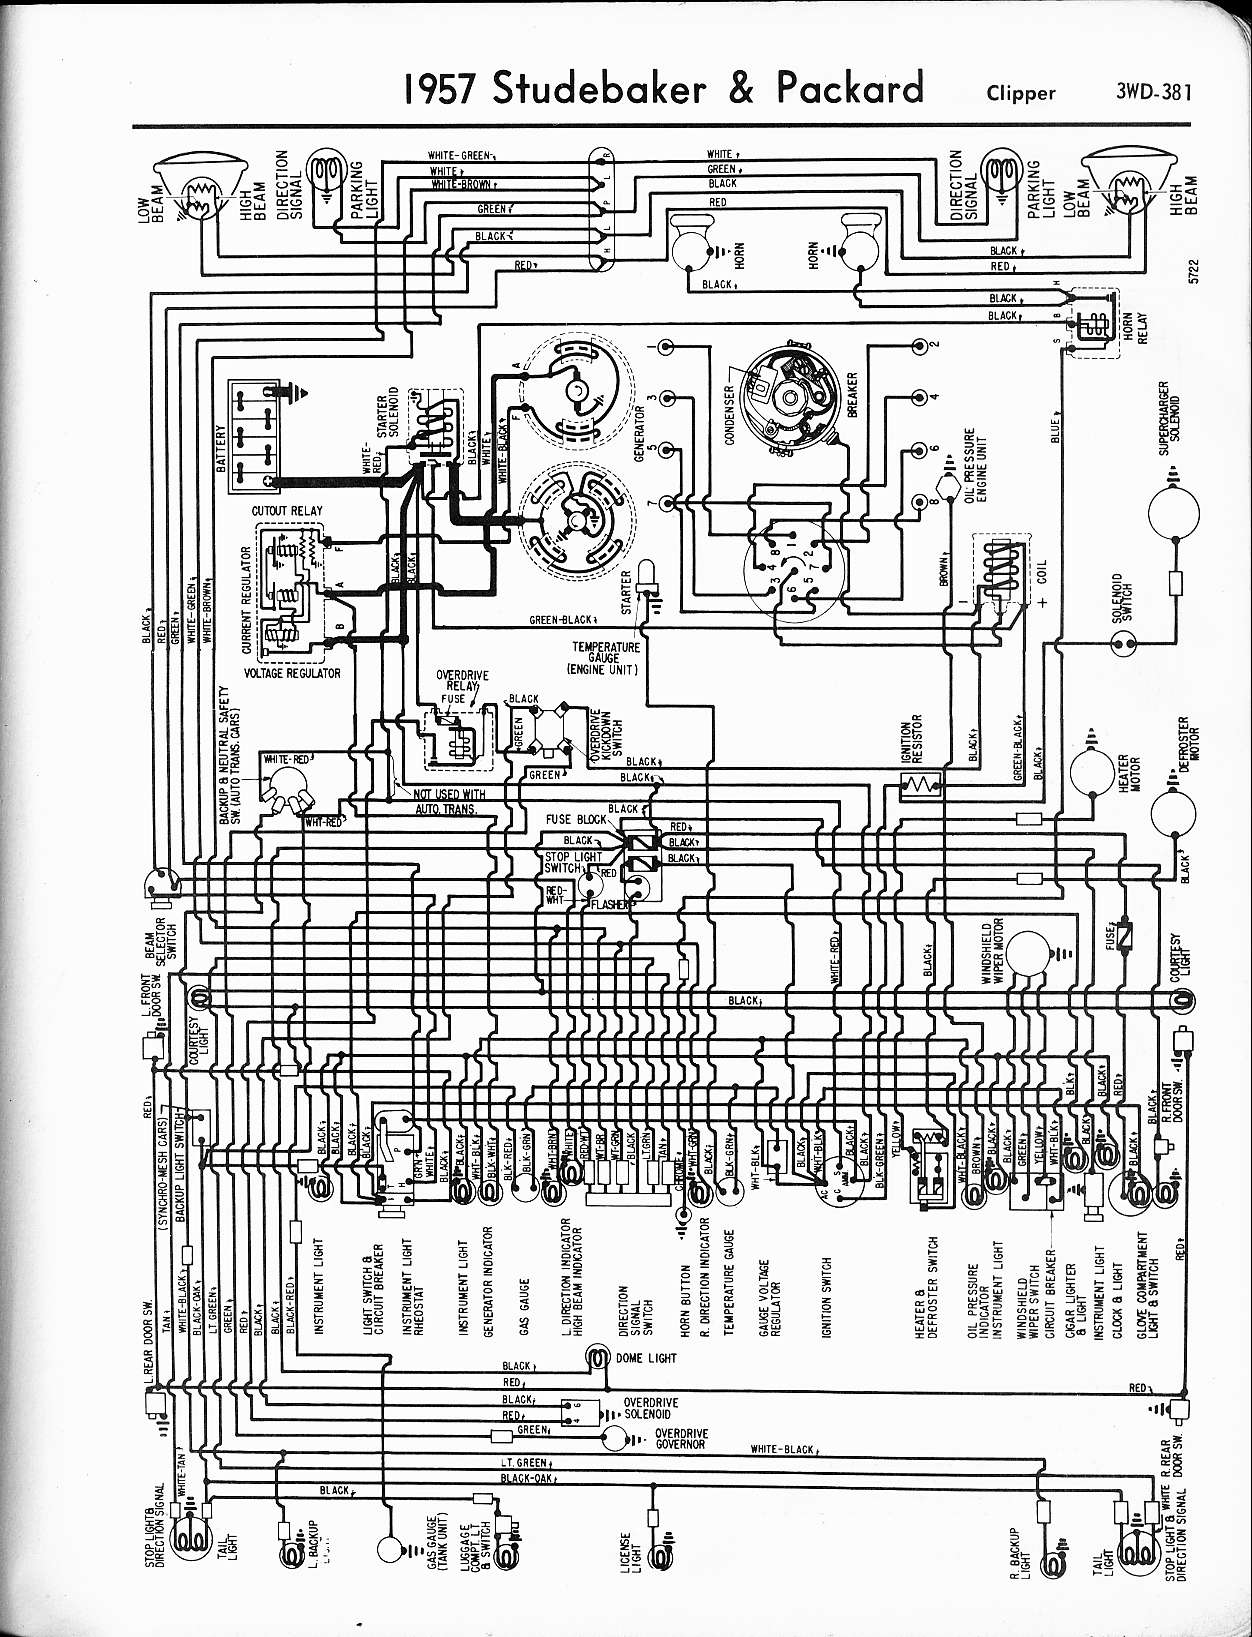 MWire5765 381 packard wiring diagrams the old car manual project studebaker wiring diagrams at cos-gaming.co